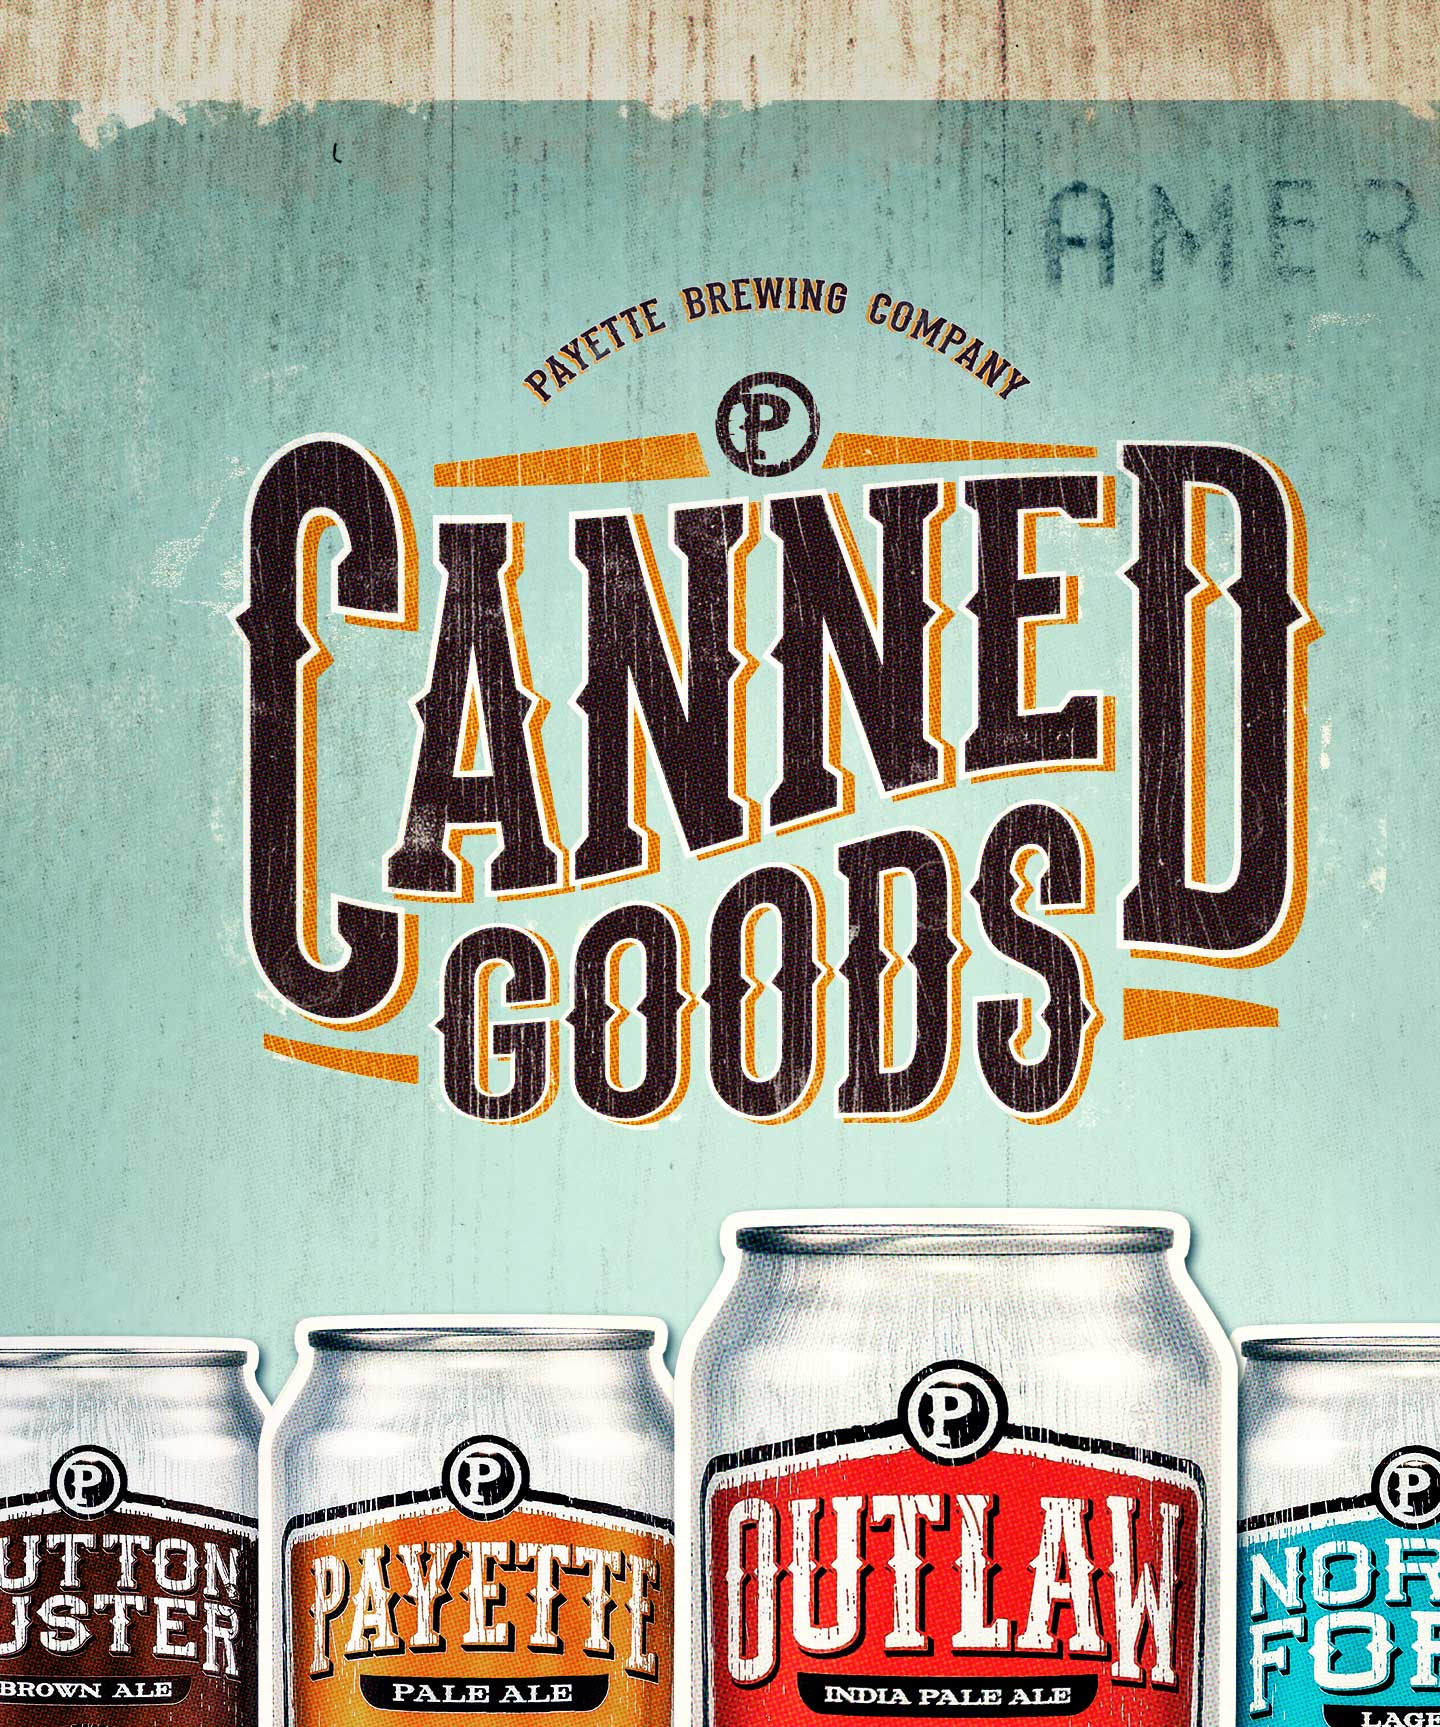 Payette Canned Goods poster design